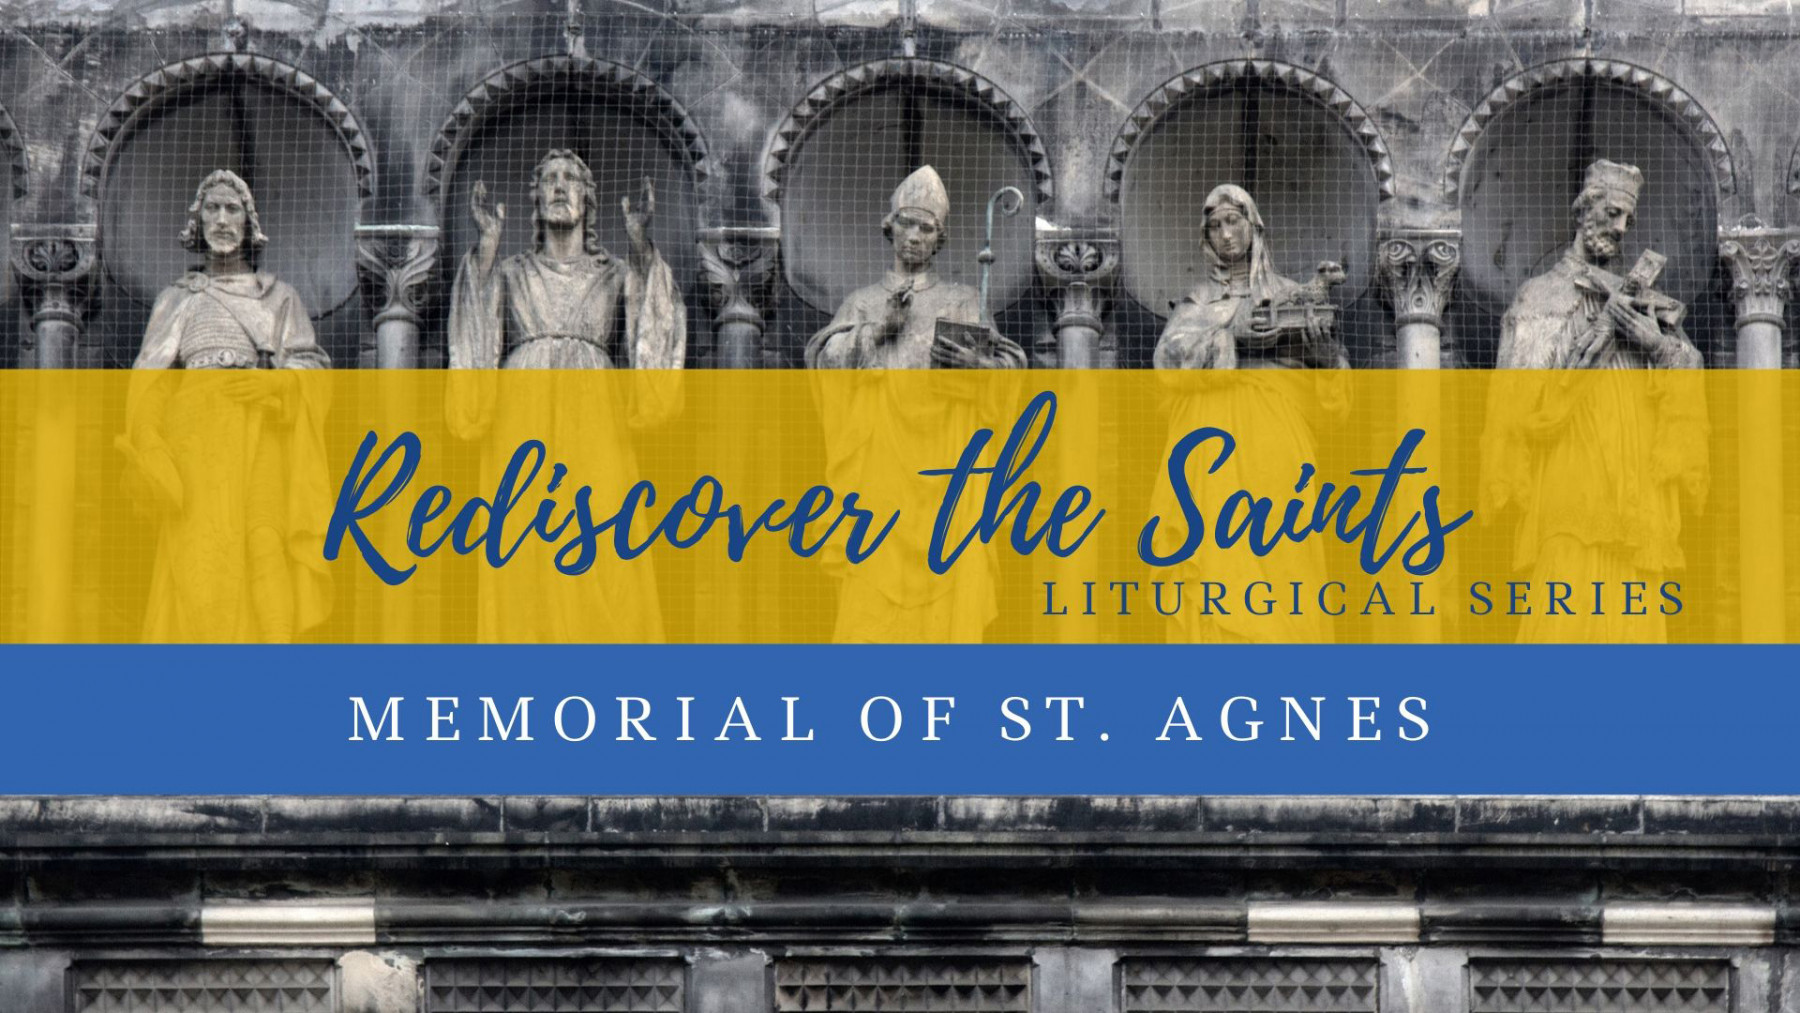 Rediscover the Saints Liturgical Series: Memorial of St. Agnes